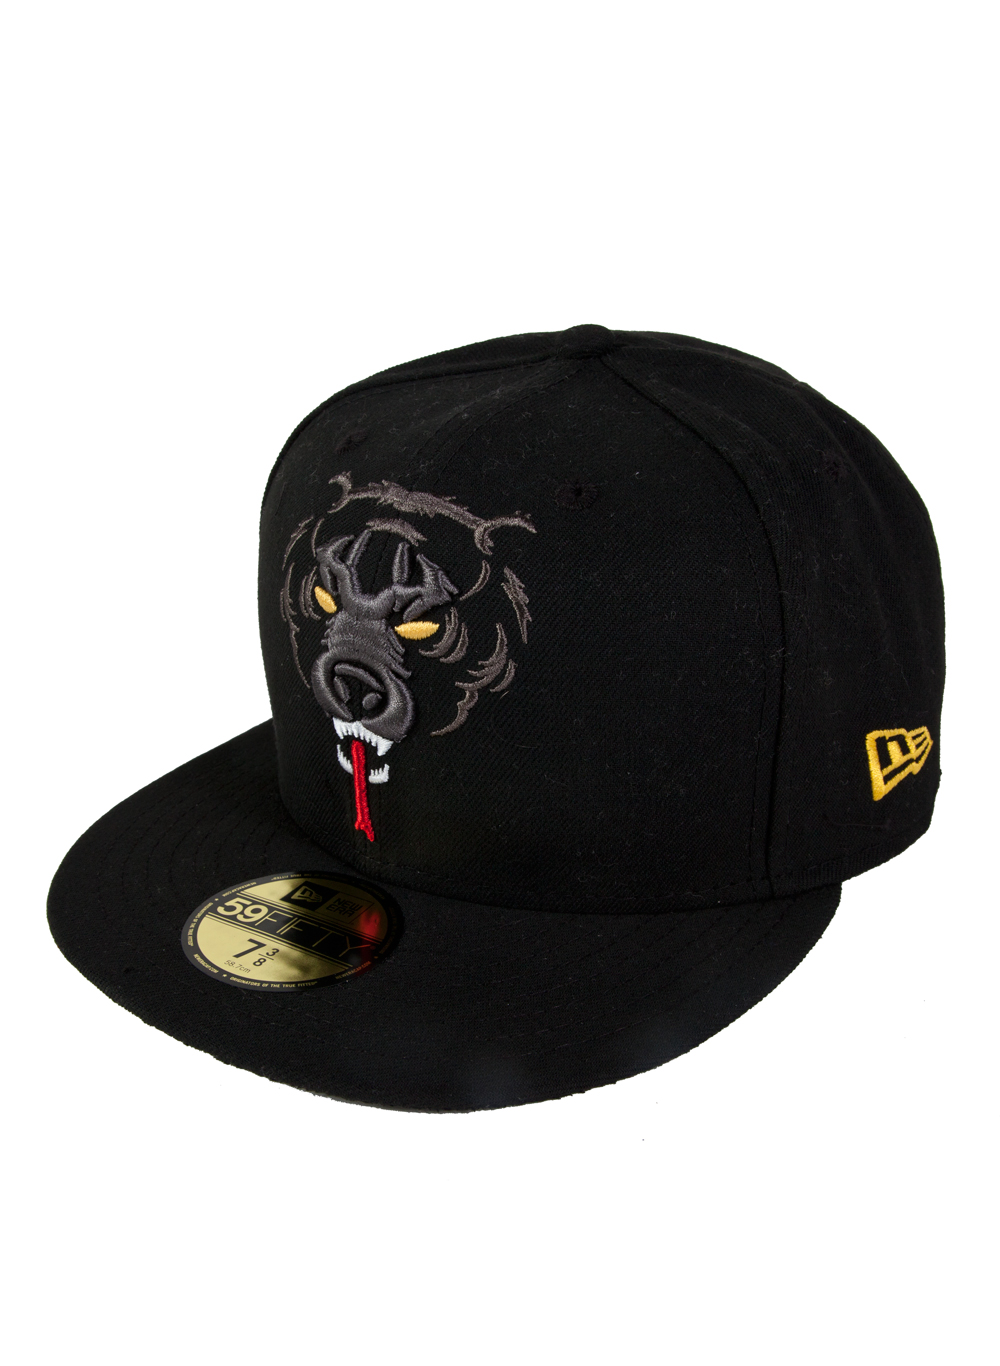 Oversized Death Adder New Era 5950